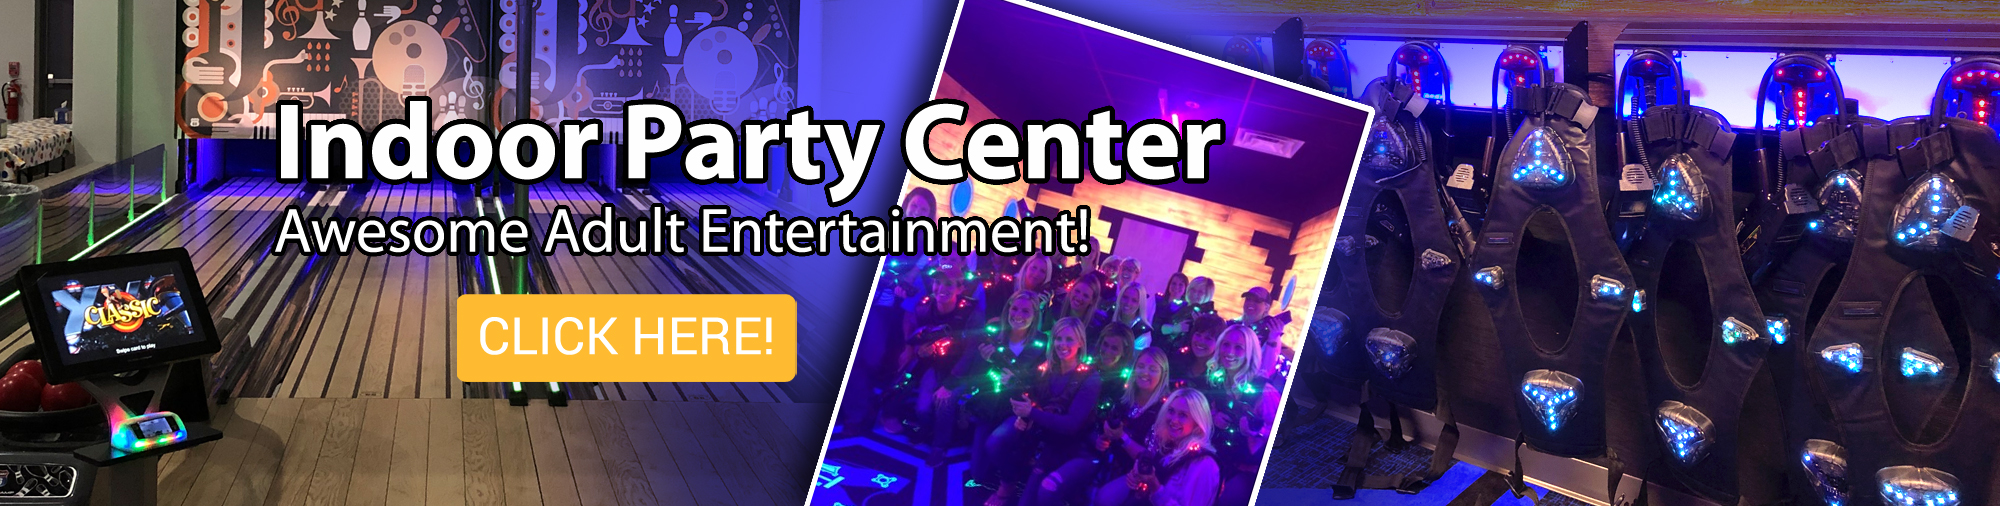 Indoor Party Center